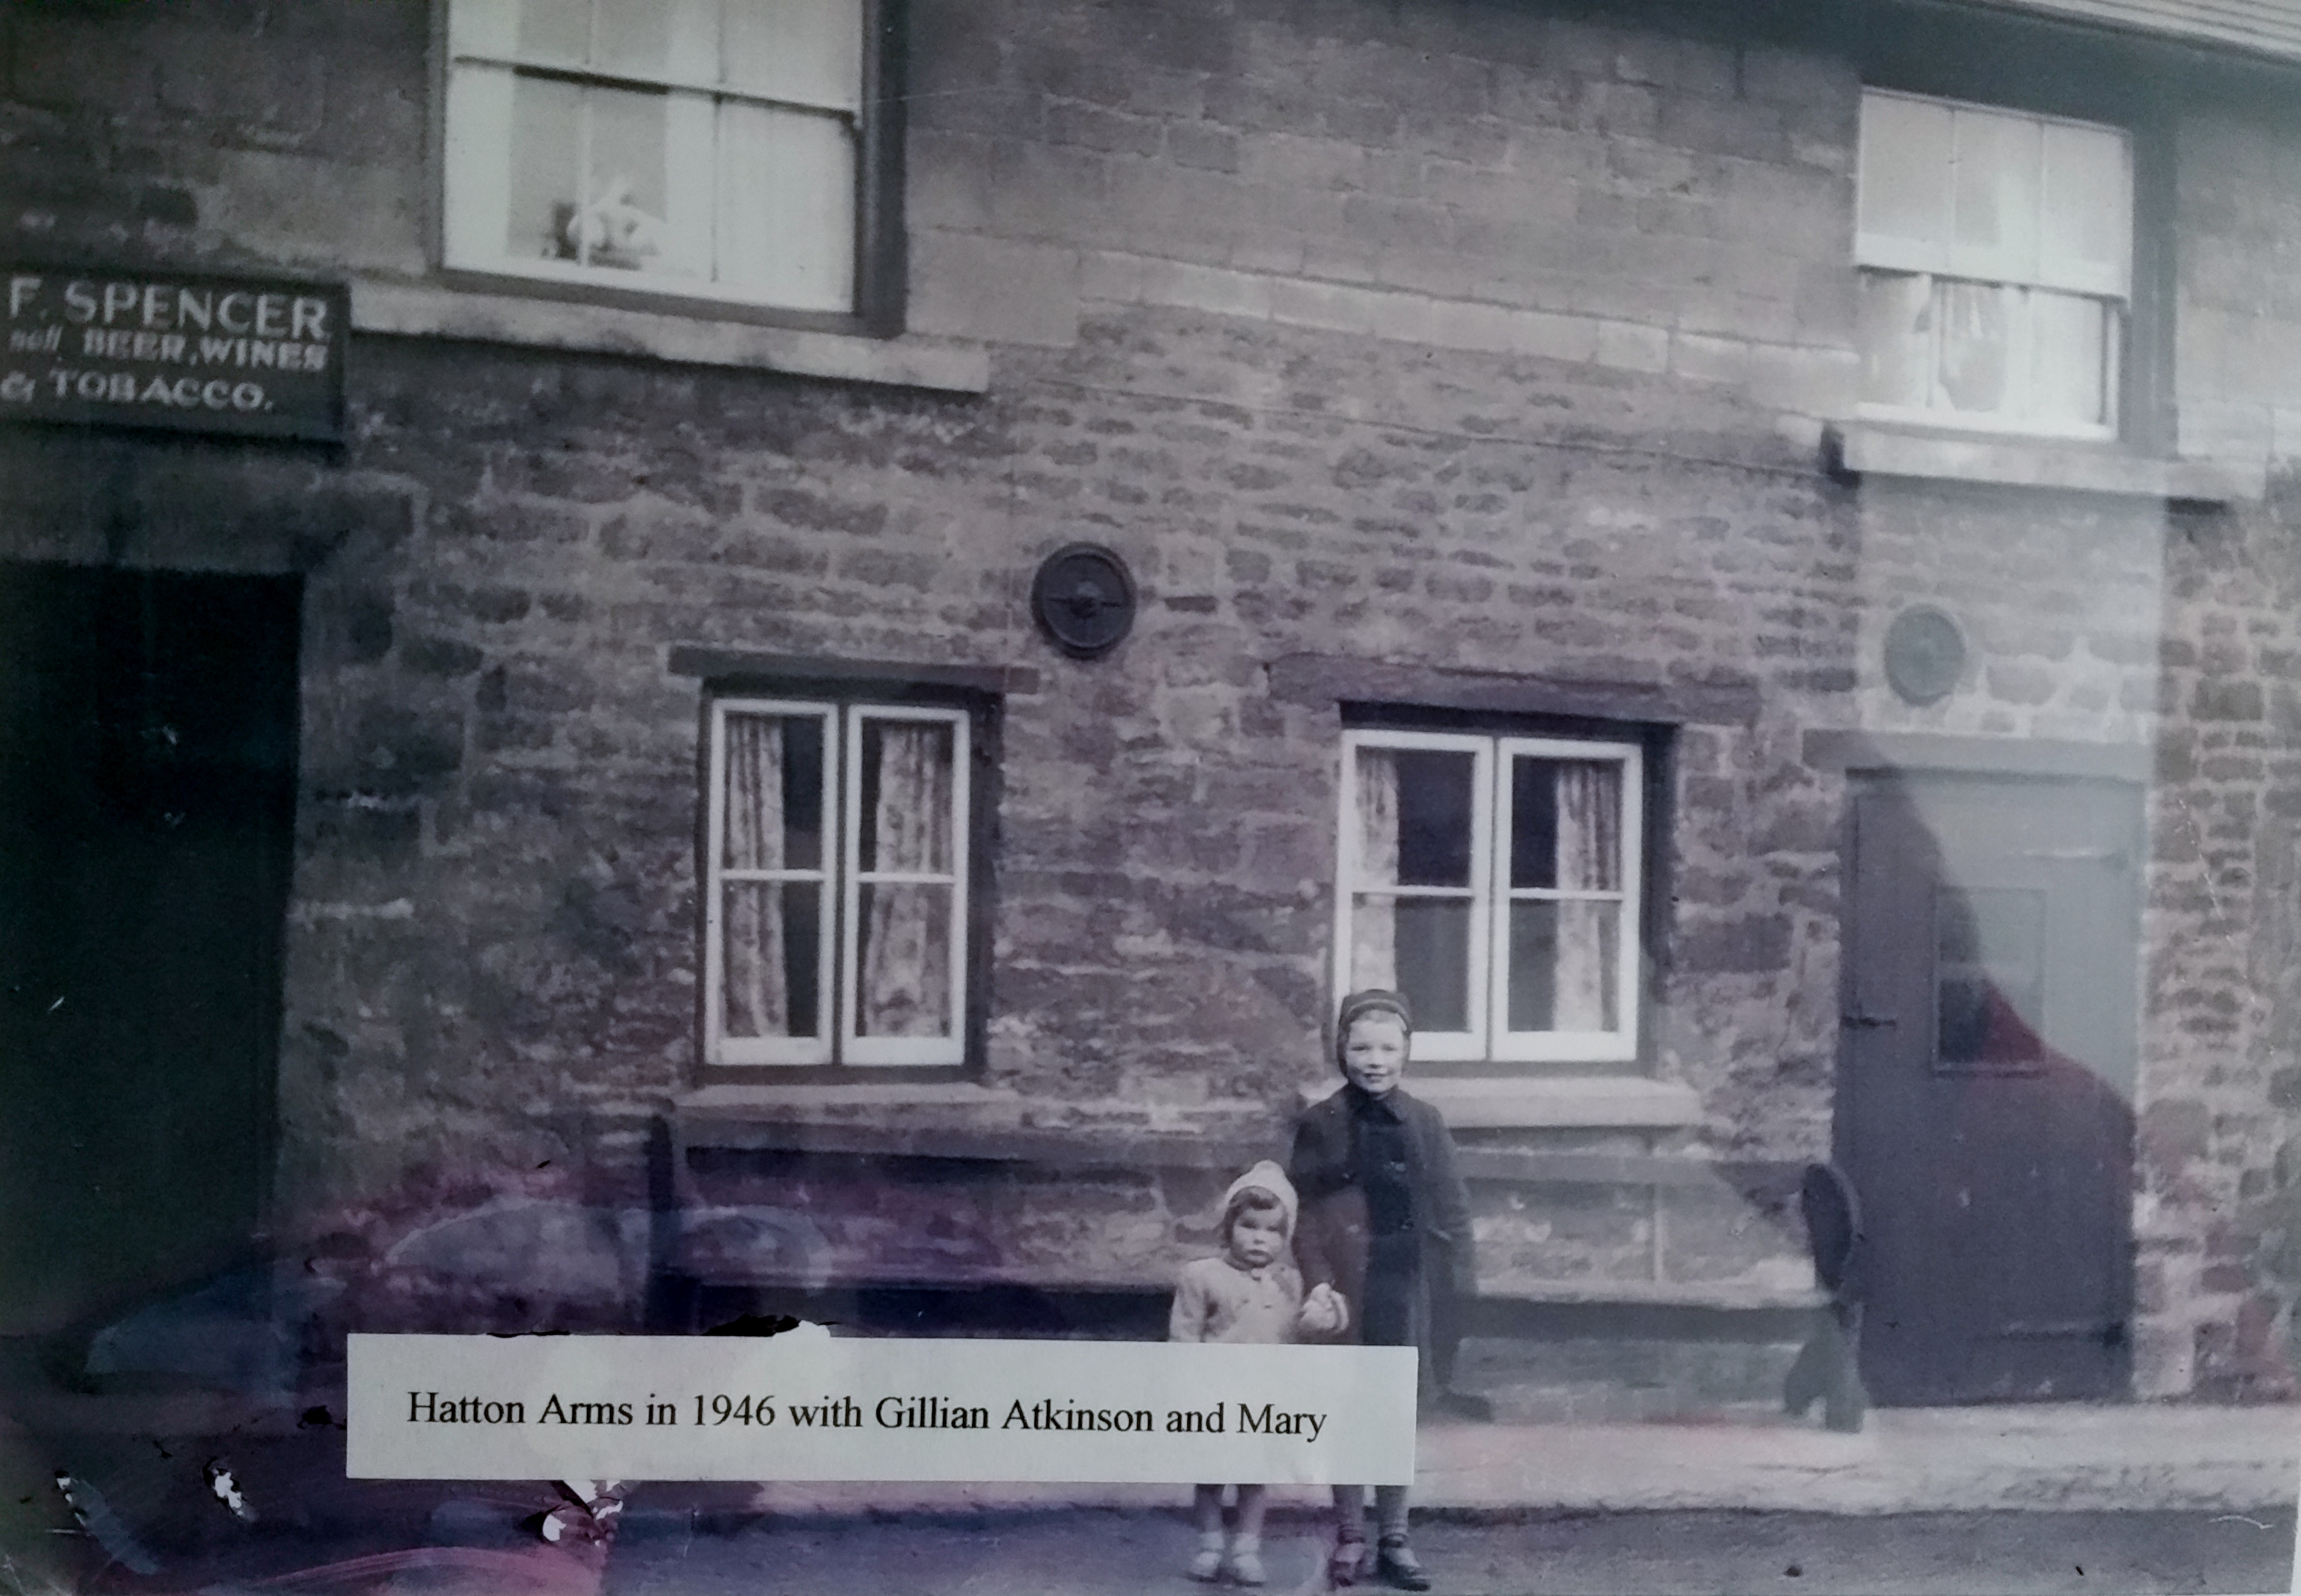 Hatton Arms in 1946